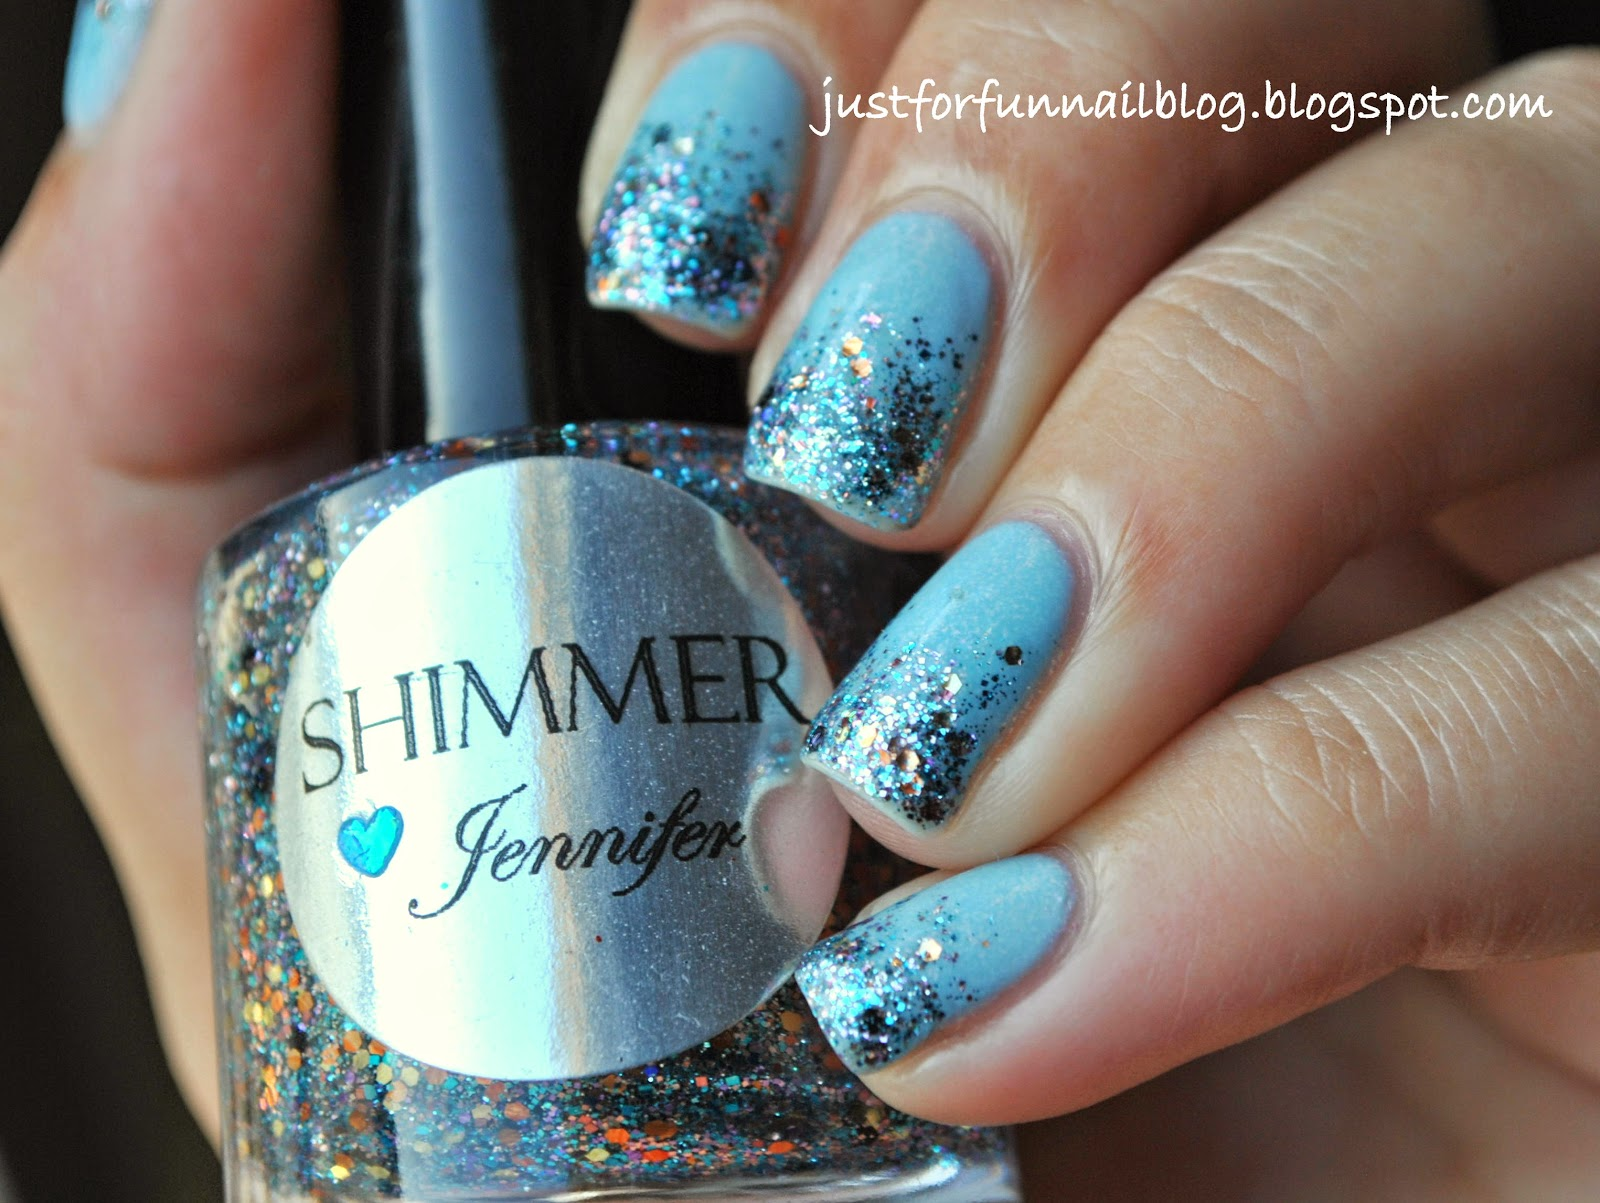 Light Blue Glitter Gradient with Shimmer - Jeniffer